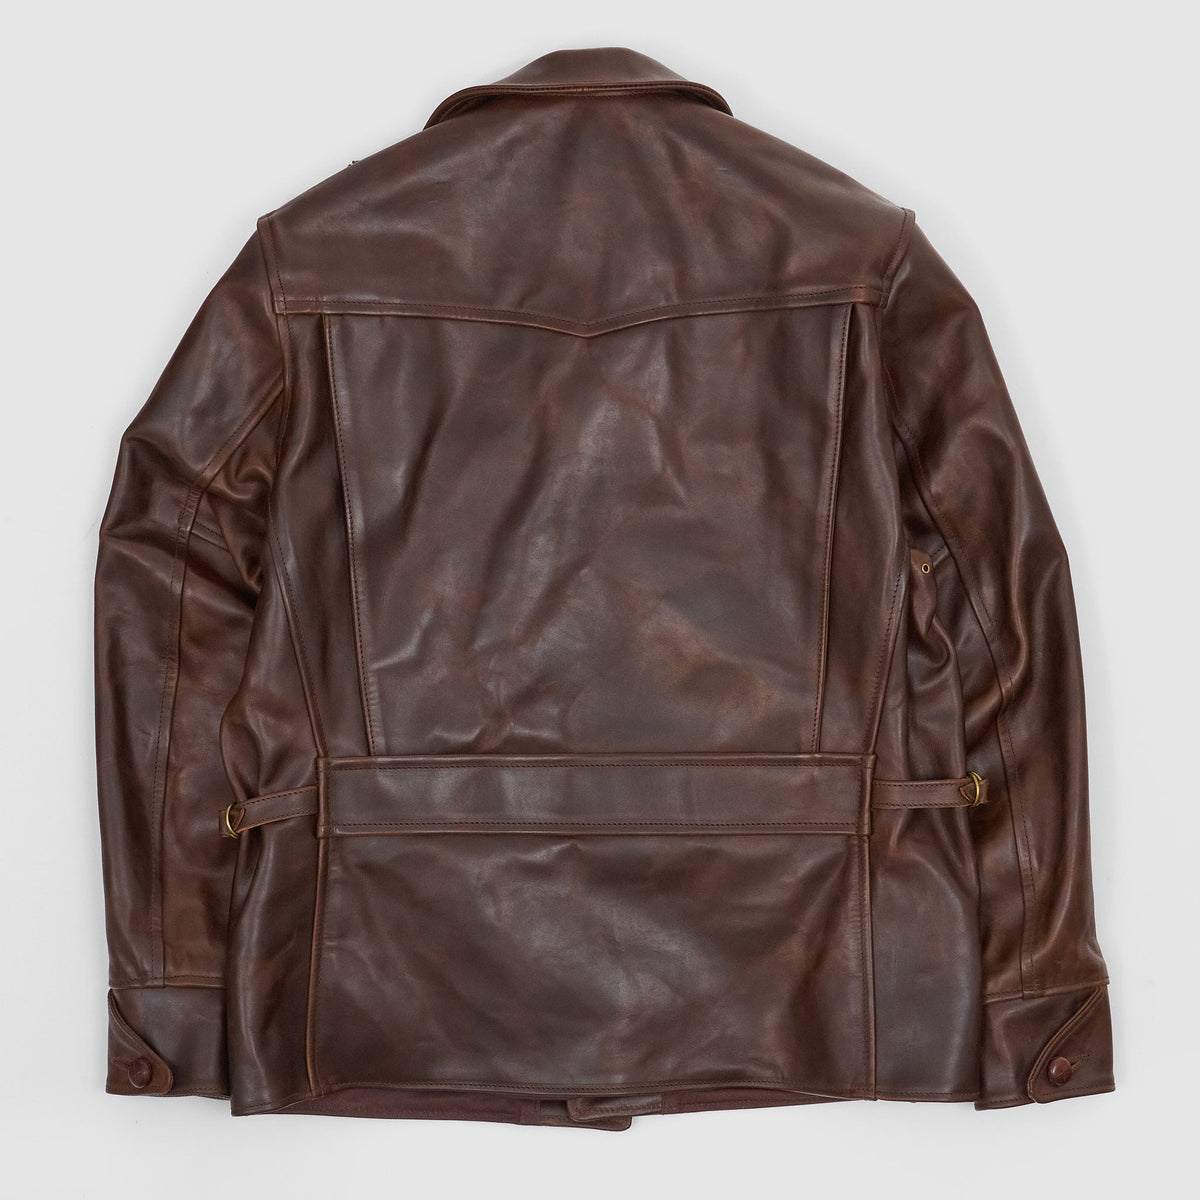 Aero Leathers Teamster Leather Jacket